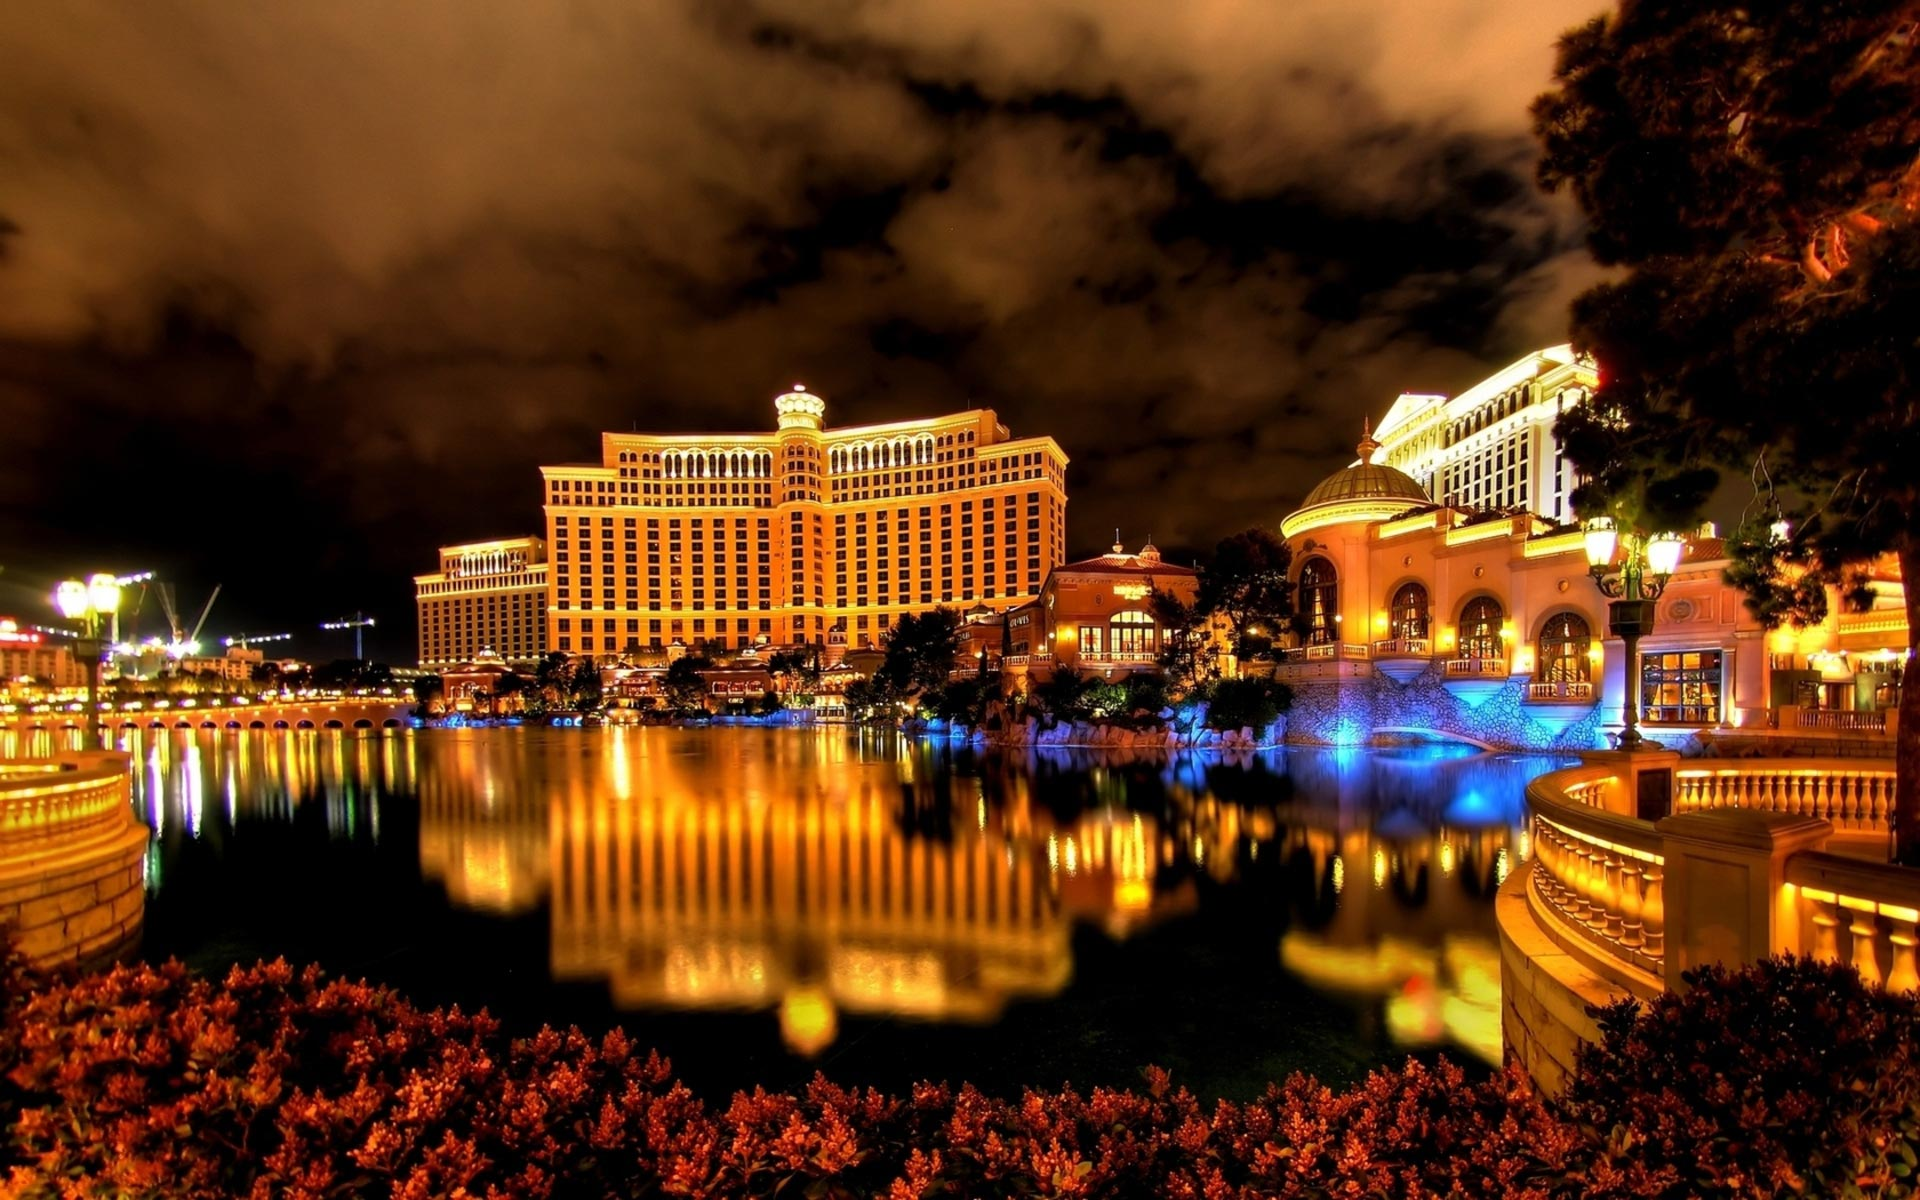 beautiful SEO of the Bellagio in Las Vegas, Nevada